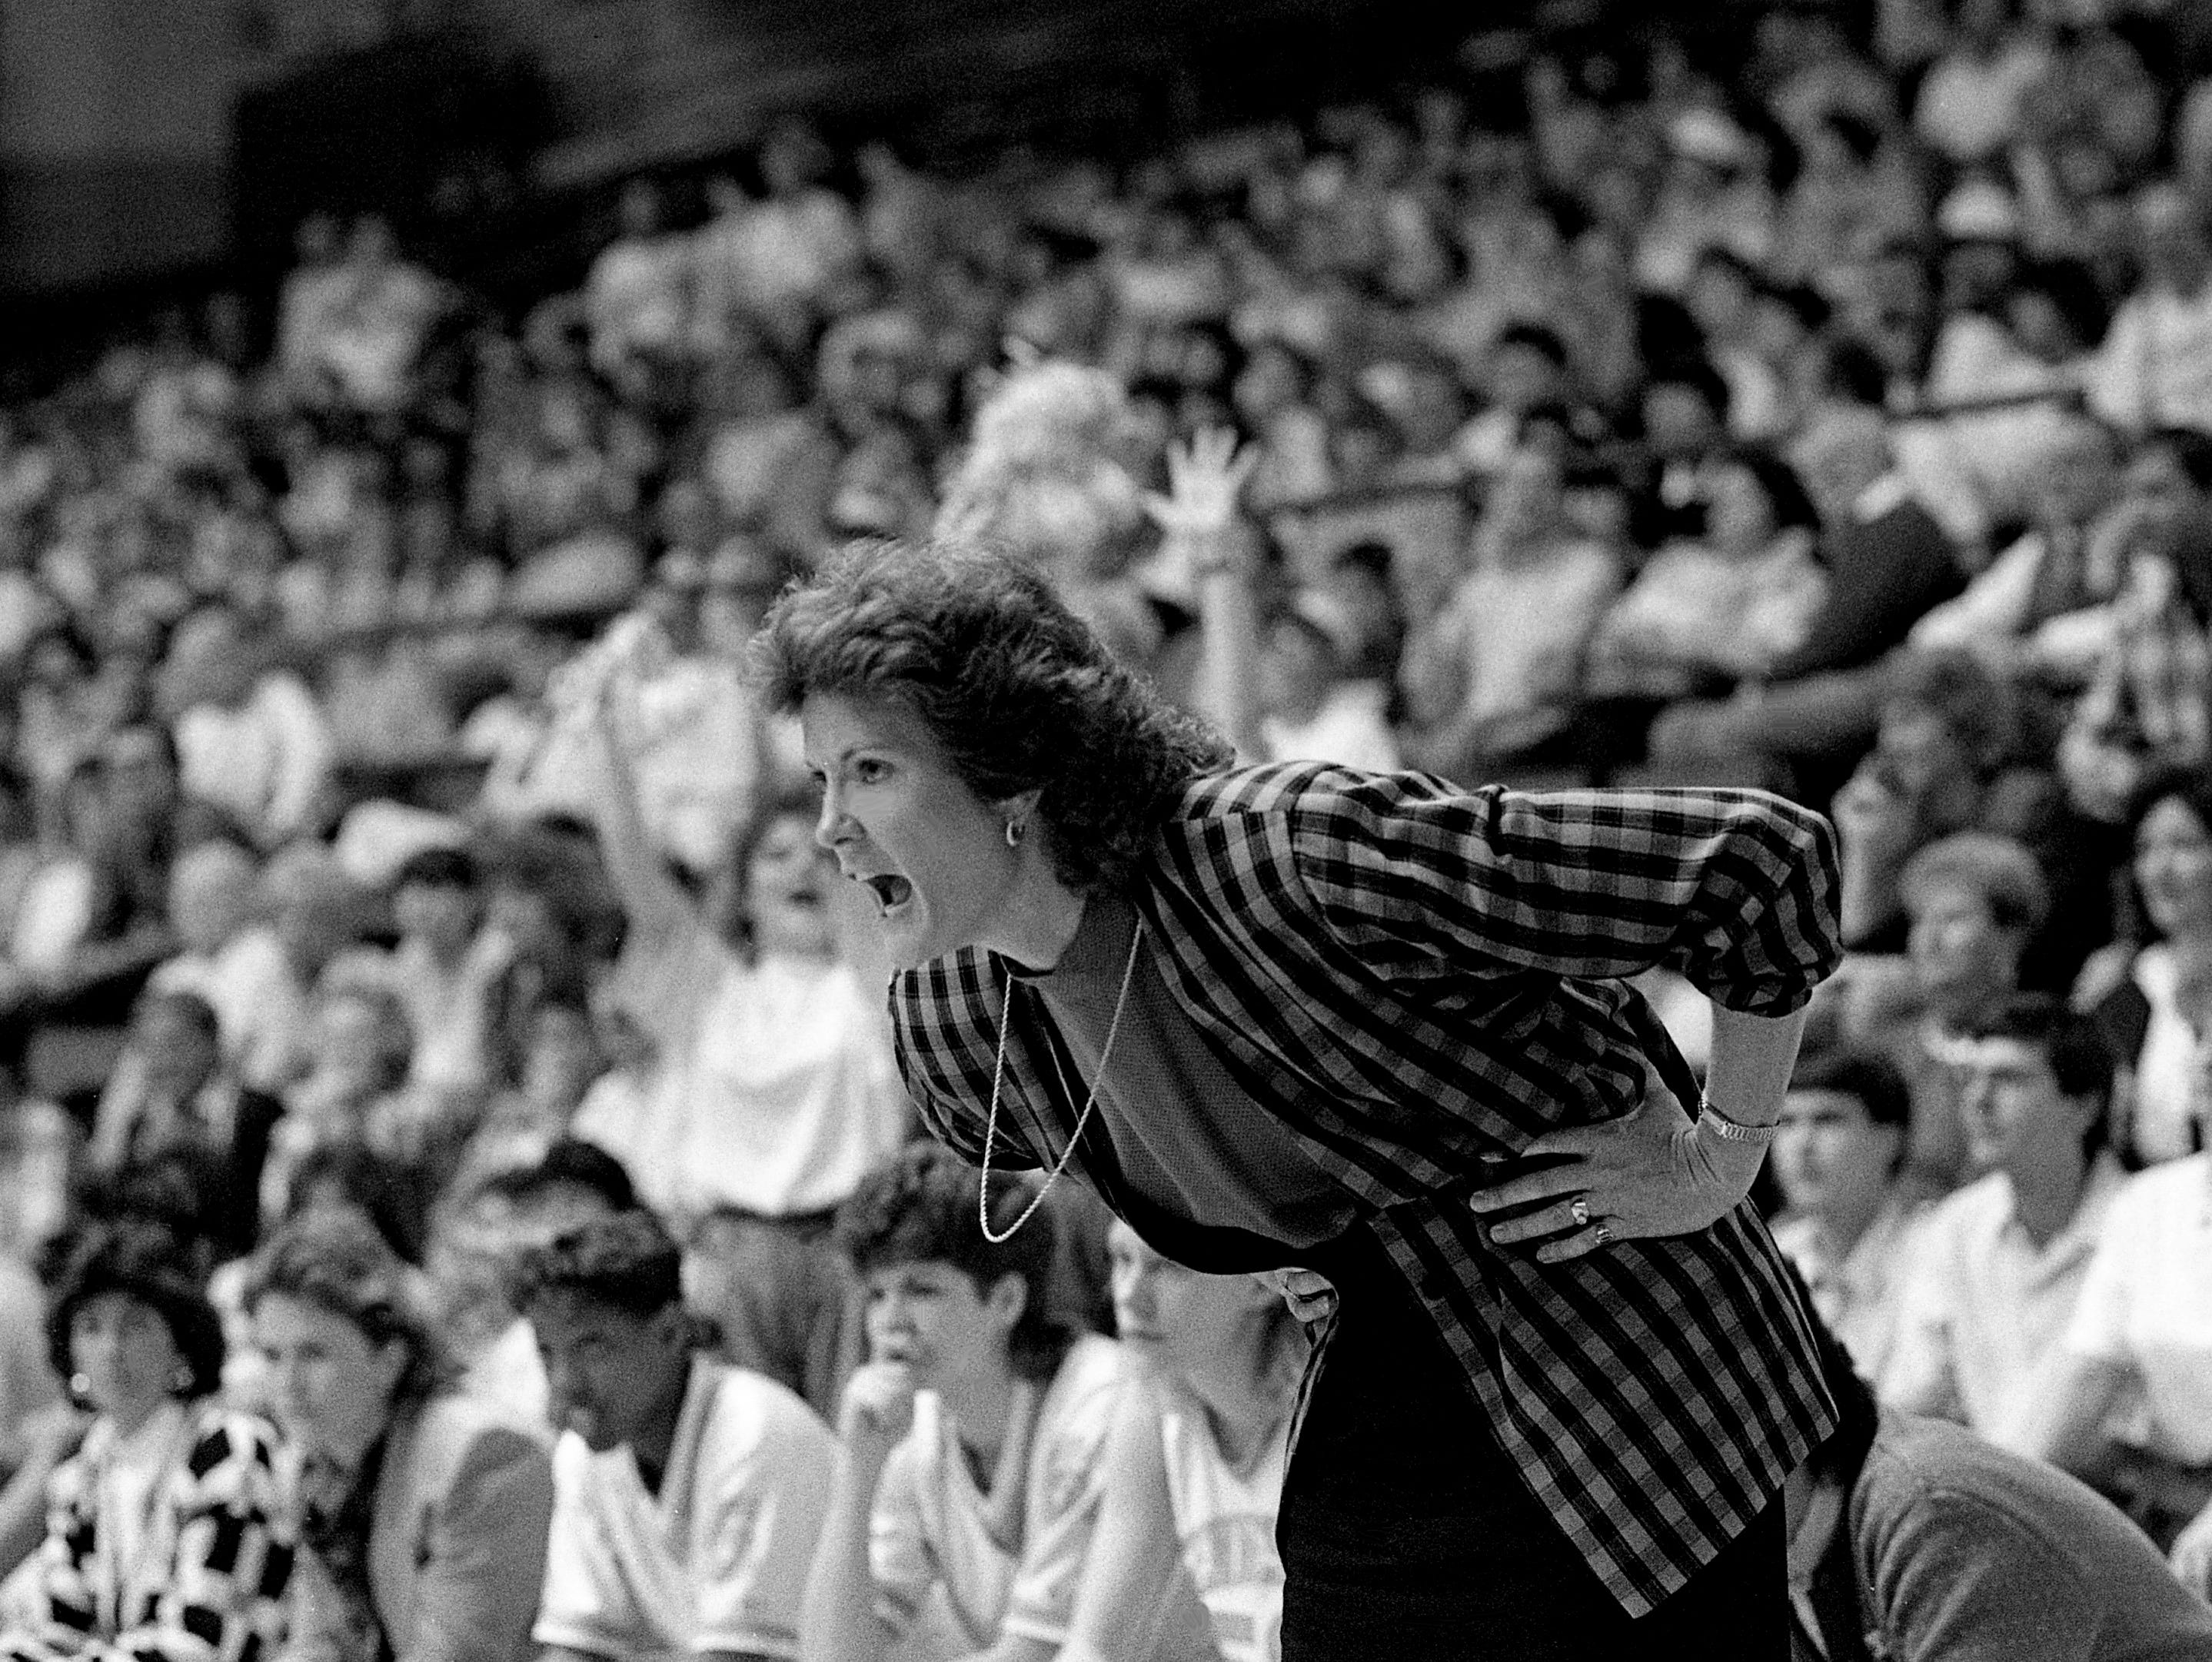 Tennessee head coach Pat Summitt expresses her feelings to her team during their 94-80 victory over Long Beach State in the NCAA East Regional championship game at Western Kentucky's Diddle Arena in Bowling Green, Kentucky, March 25, 1989.